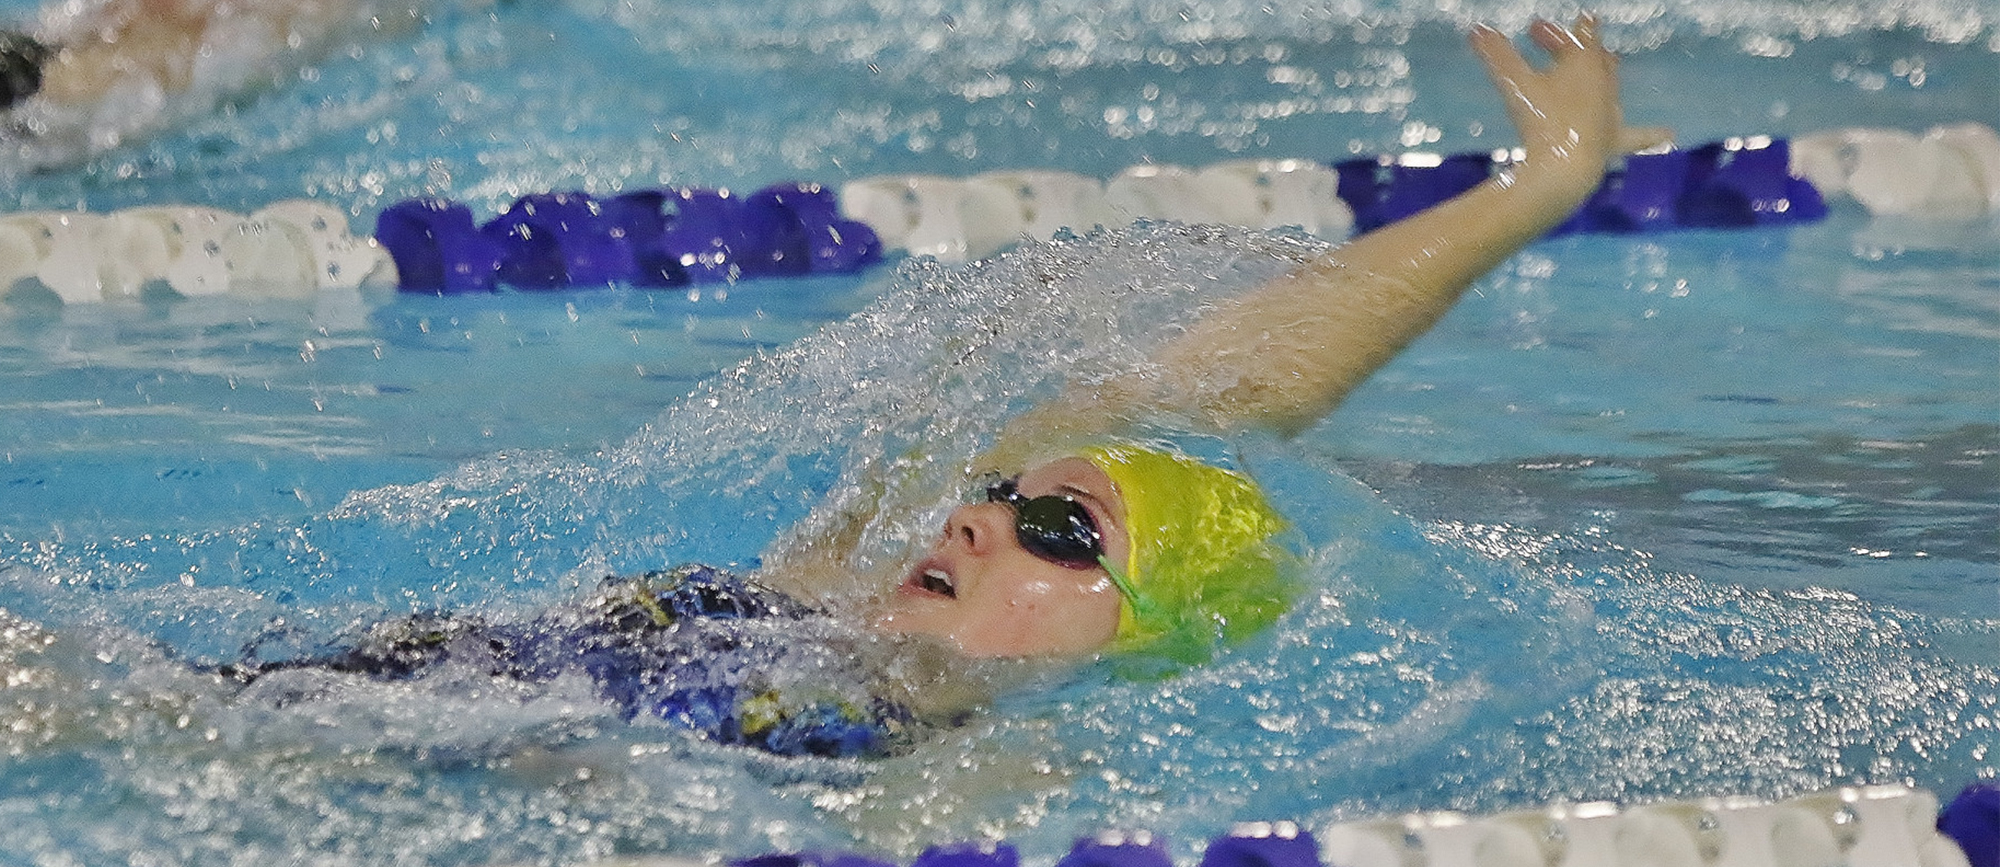 Junior Kayla Snider won three events on Saturday as the Golden Bears dropped their dual meet opener to Babson, 152-105.